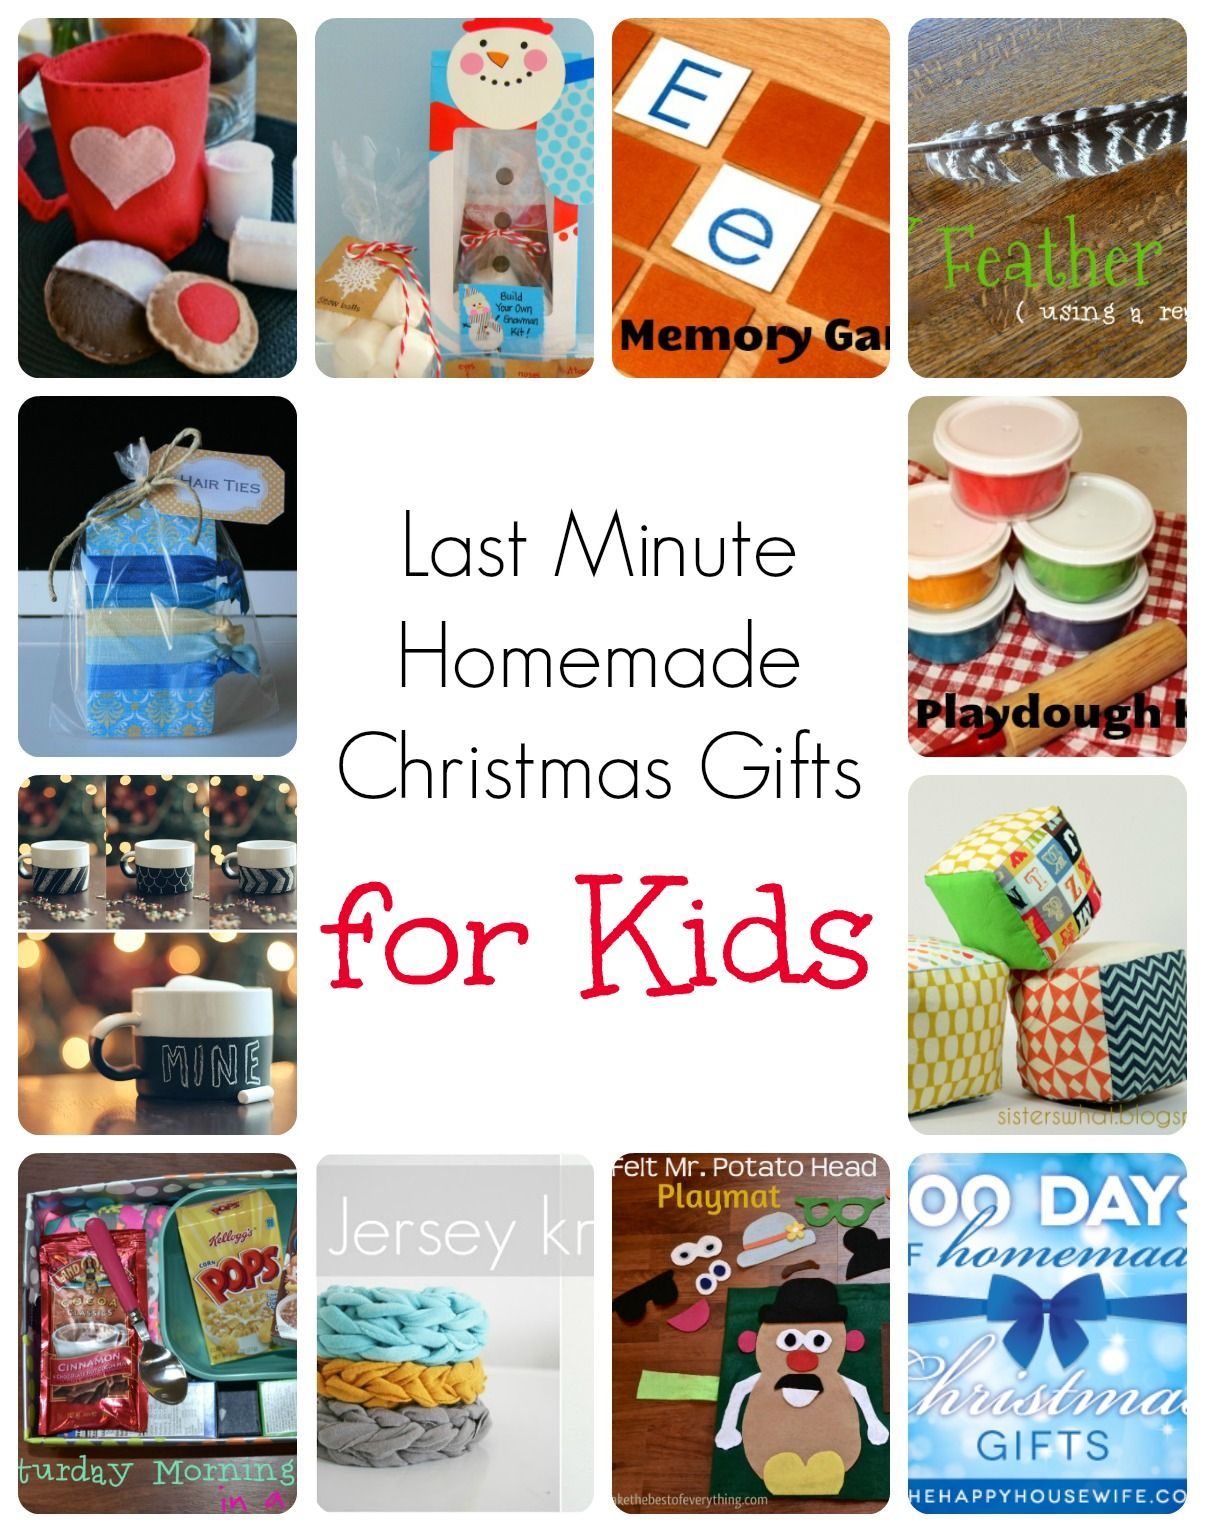 Last Minute Homemade Christmas Gifts For Kids The Happy Housewife Home Management Christmas Gifts For Kids Homemade Christmas Gifts Christmas Diy Kids